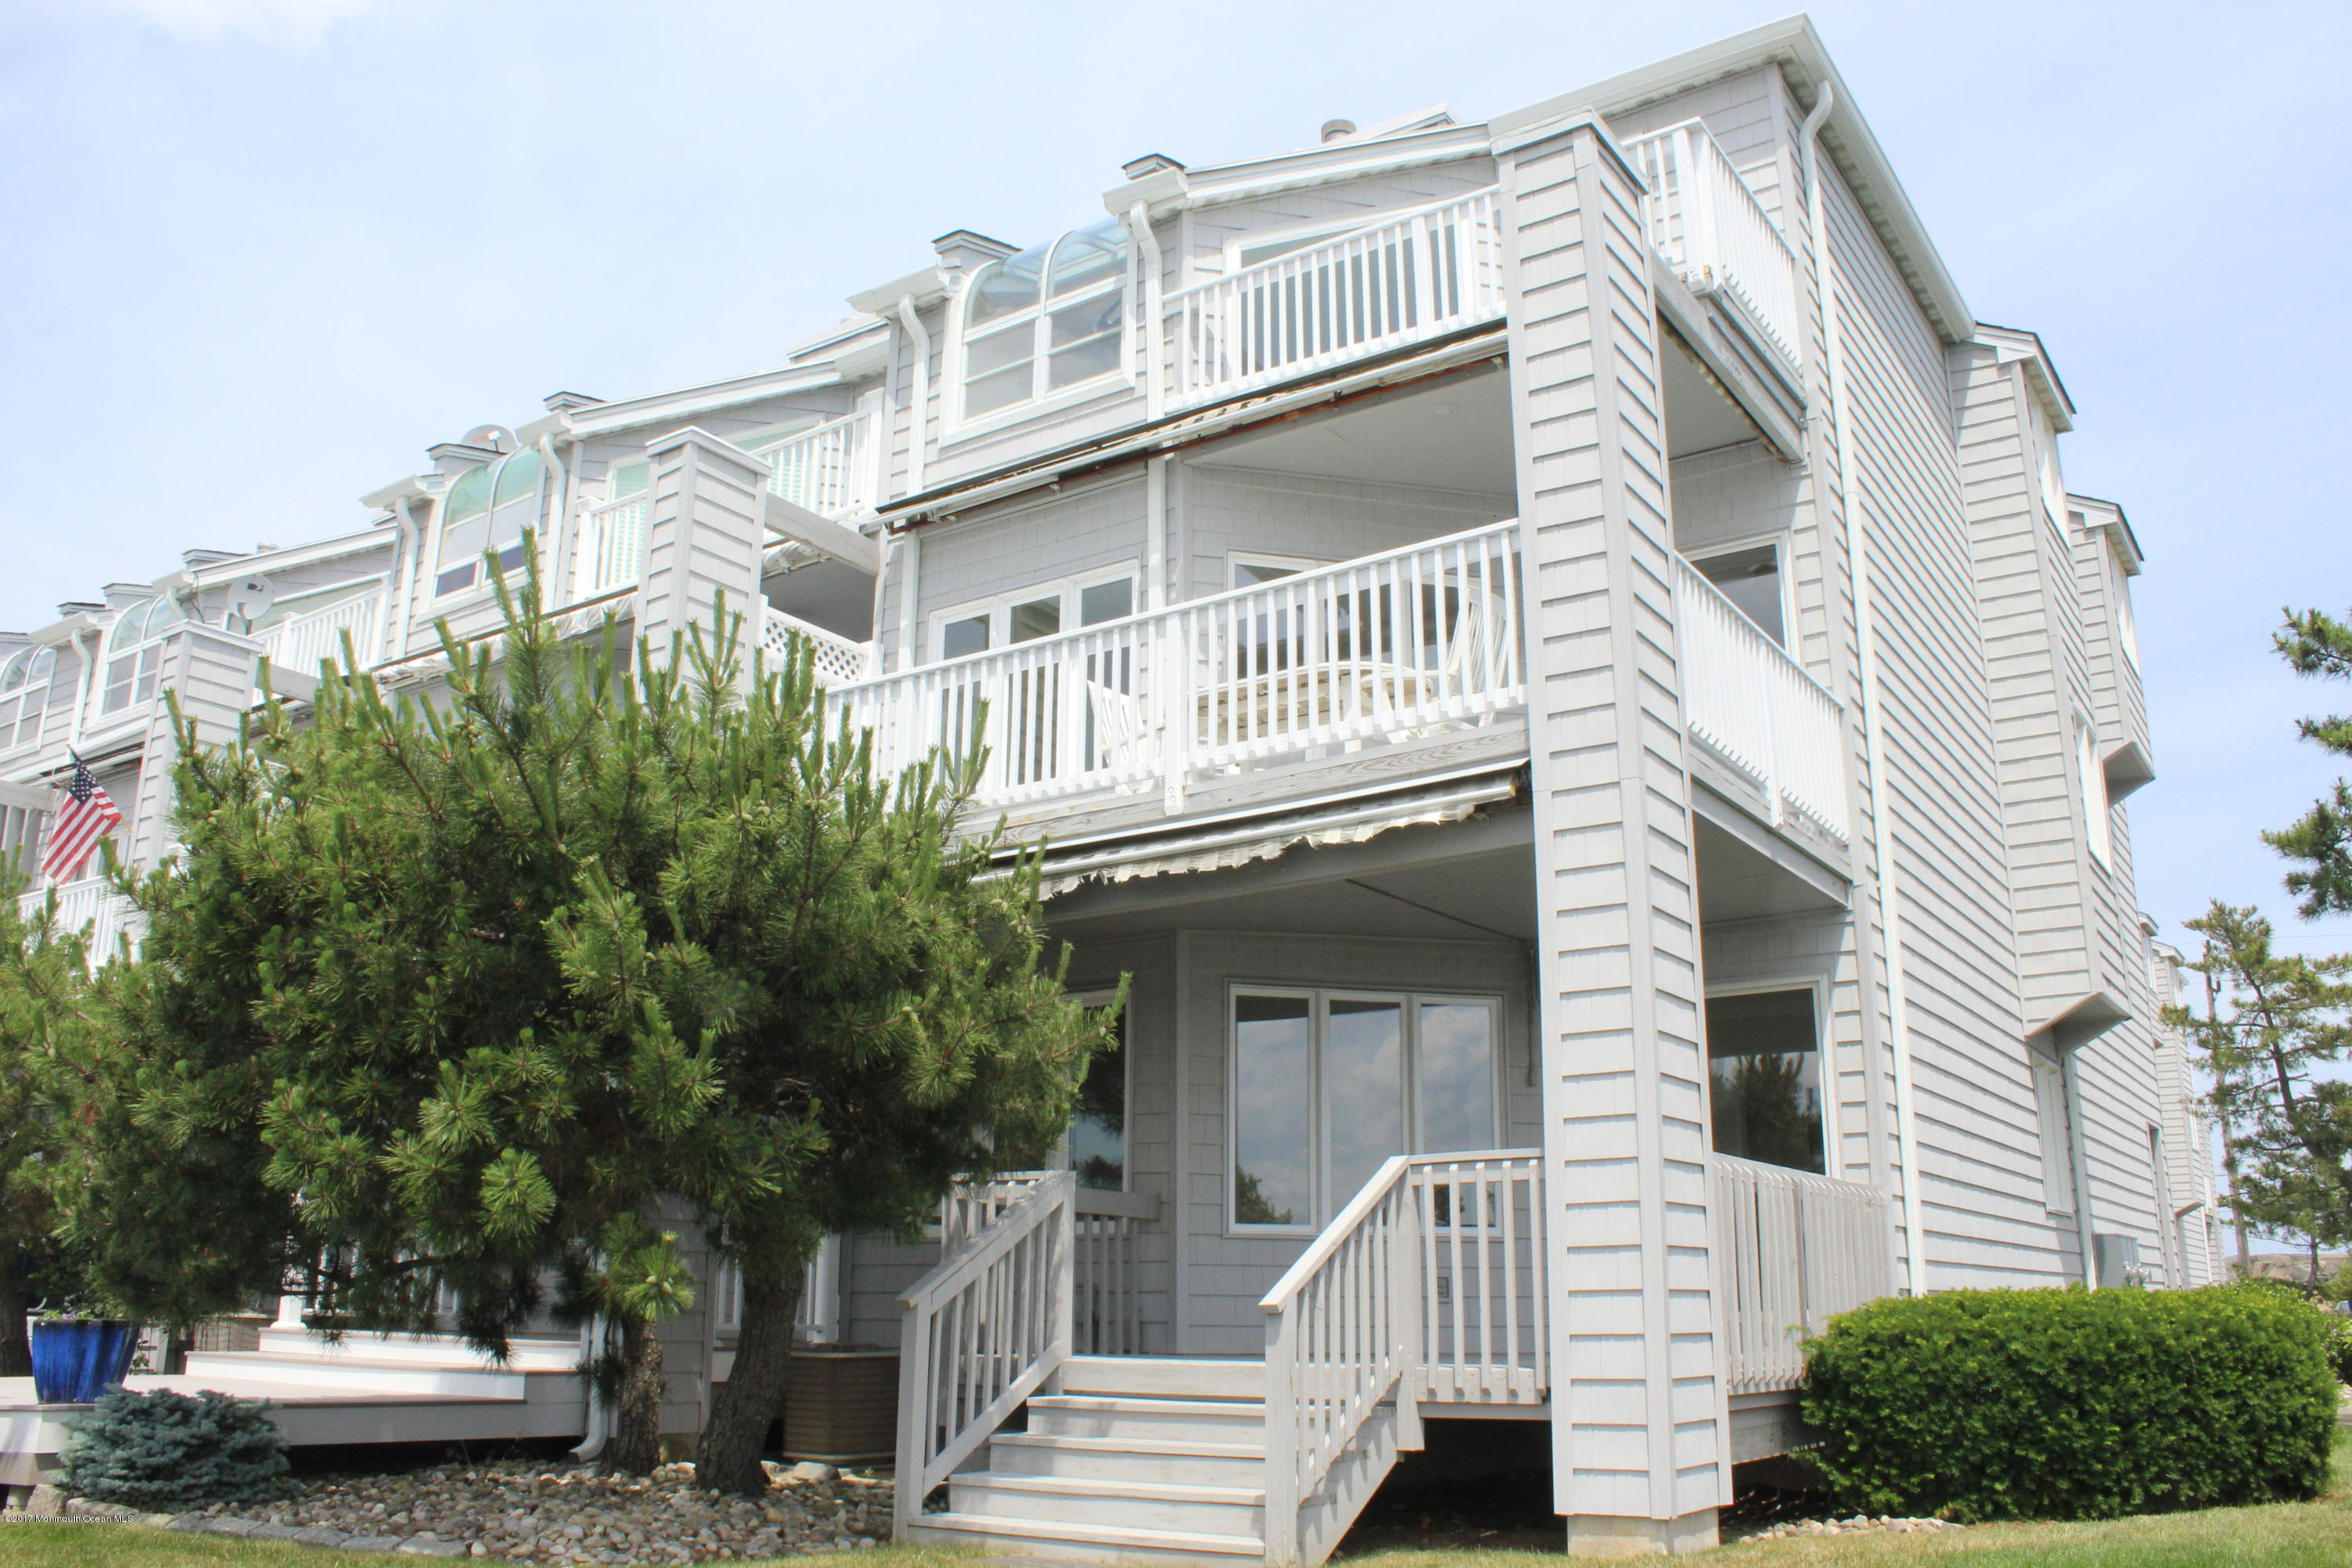 766 OCEAN AVENUE #5, SEA BRIGHT, NJ 07760